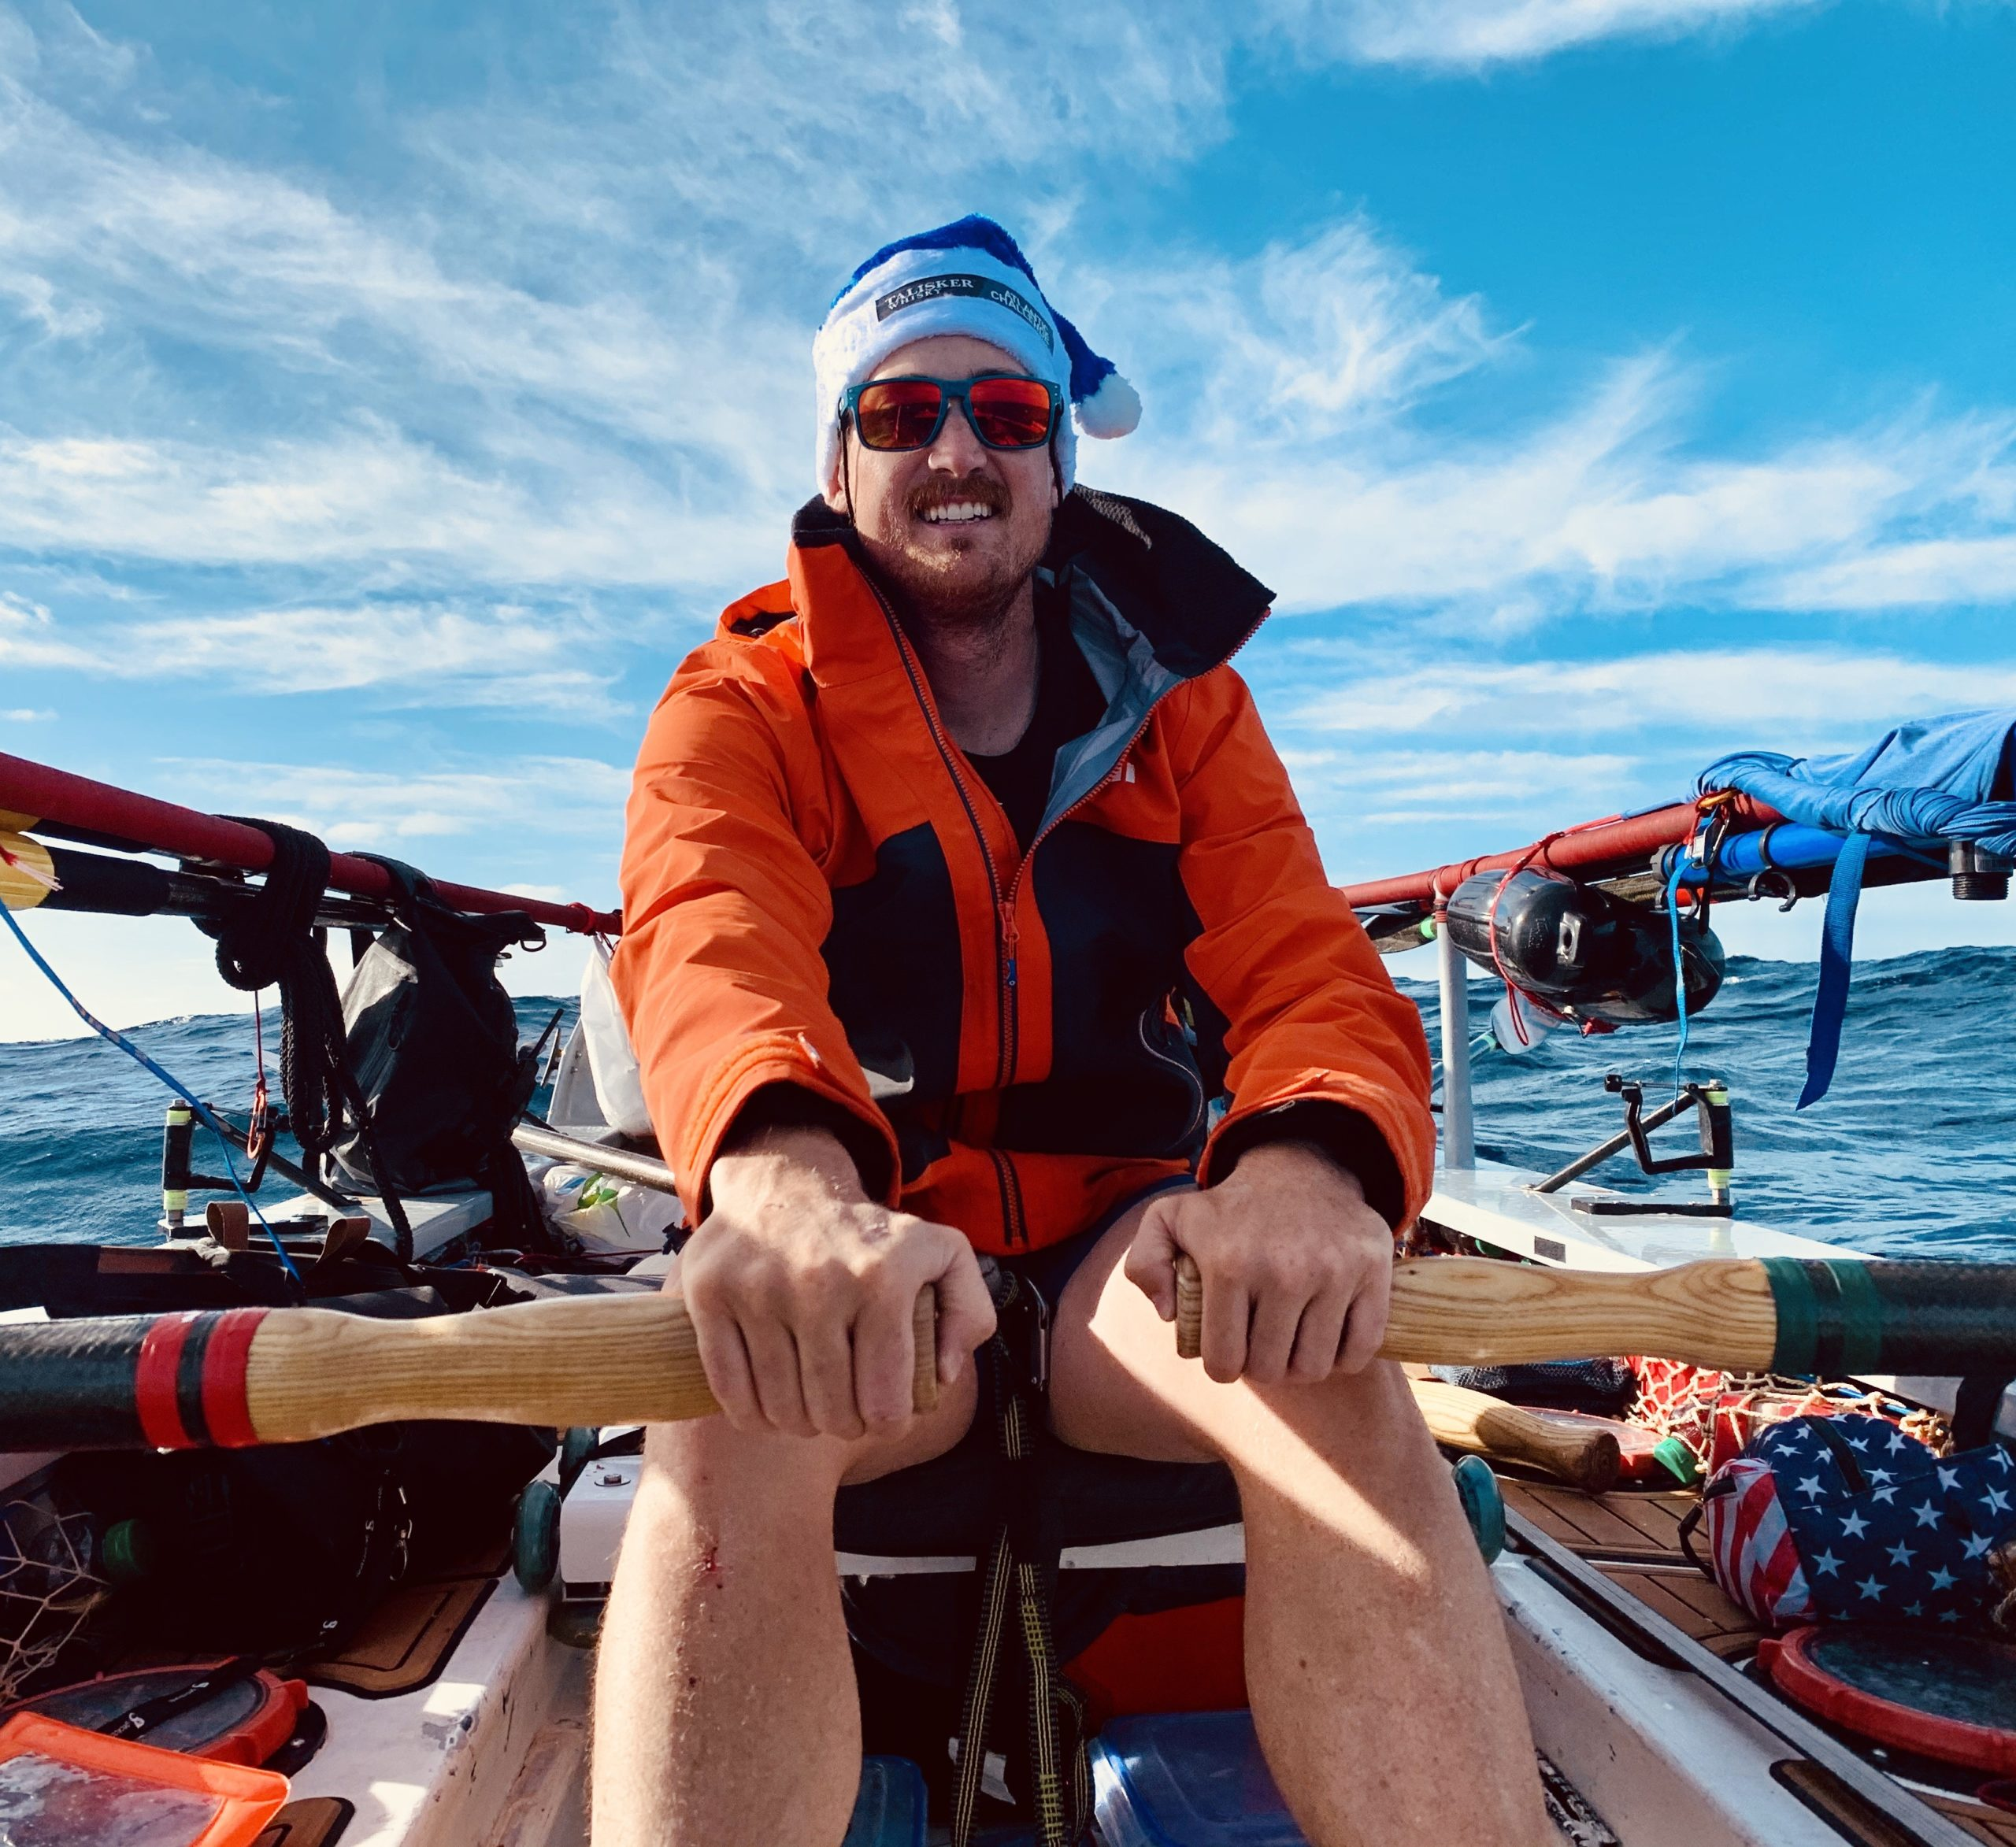 """Denver native Evan Stratton and other veterans raced across the Atlantic Ocean, in a rowboat, to raise awareness of mental health issues. The team was called """"Fight Oar Die."""""""